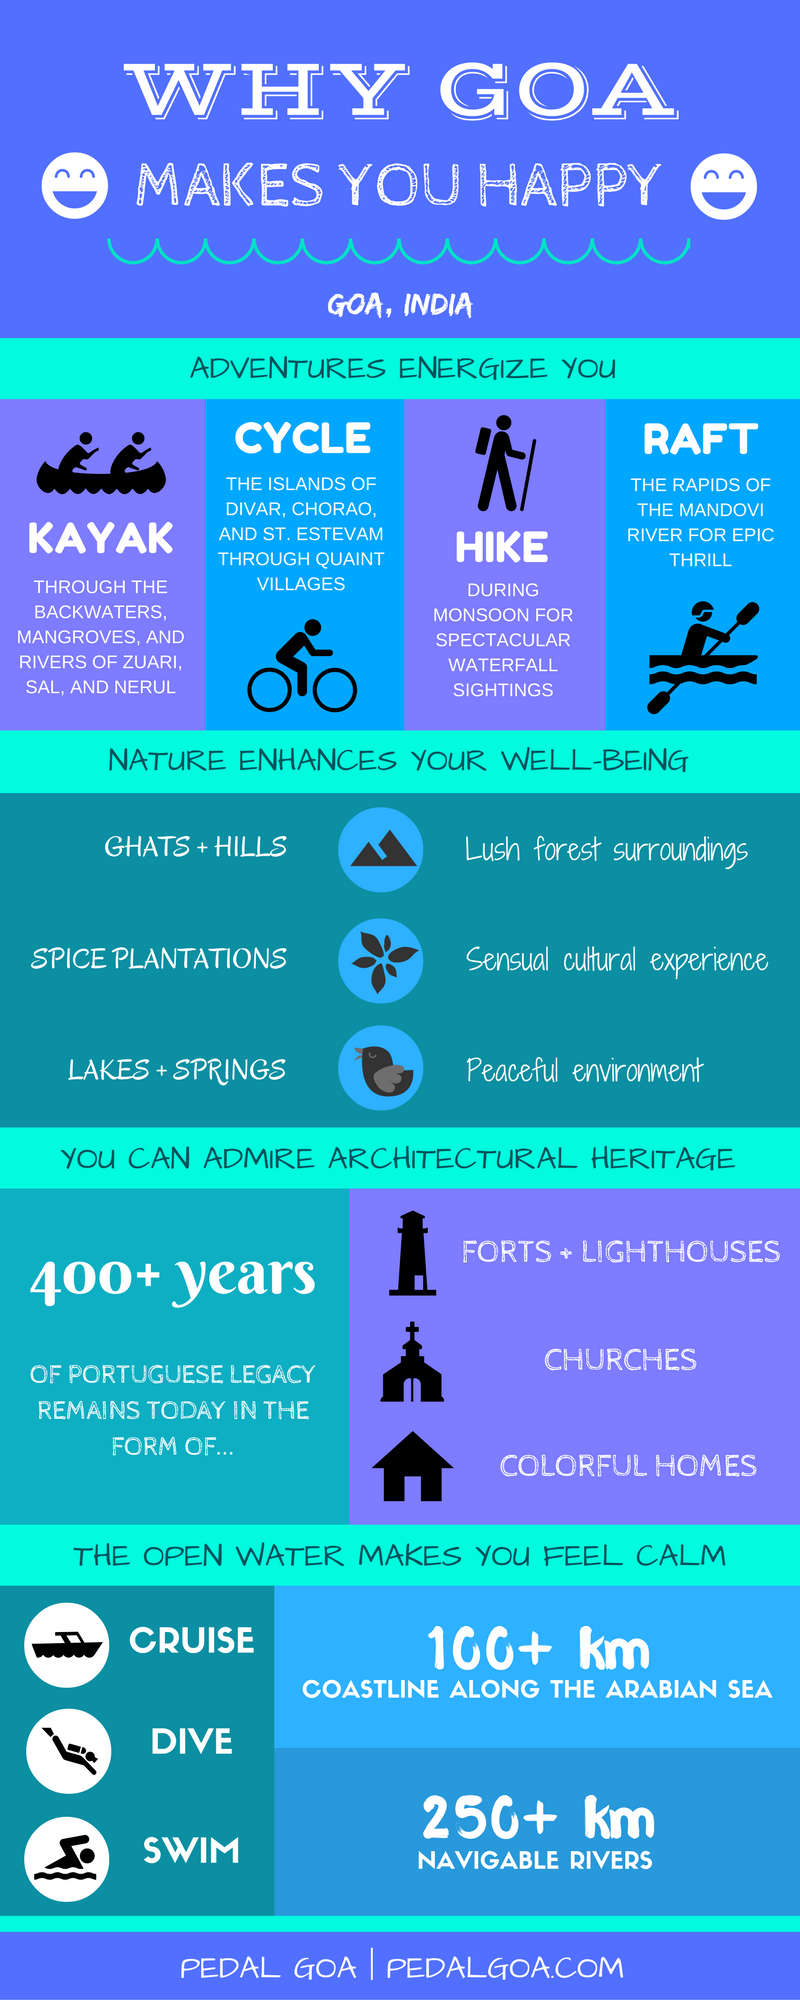 Why Goa makes you happy :) (Things to do in Goa!) - Adventure sports with kayaking, cycling, hiking, white water rafting. Nature with ghats and hills, spice plantations, lakes and springs. Portuguese legacy through architectural heritage with forts, lighthouses, churches, houses. Open water with cruising, scuba diving, swimming. Goa, India. Infographic | Pedal Goa